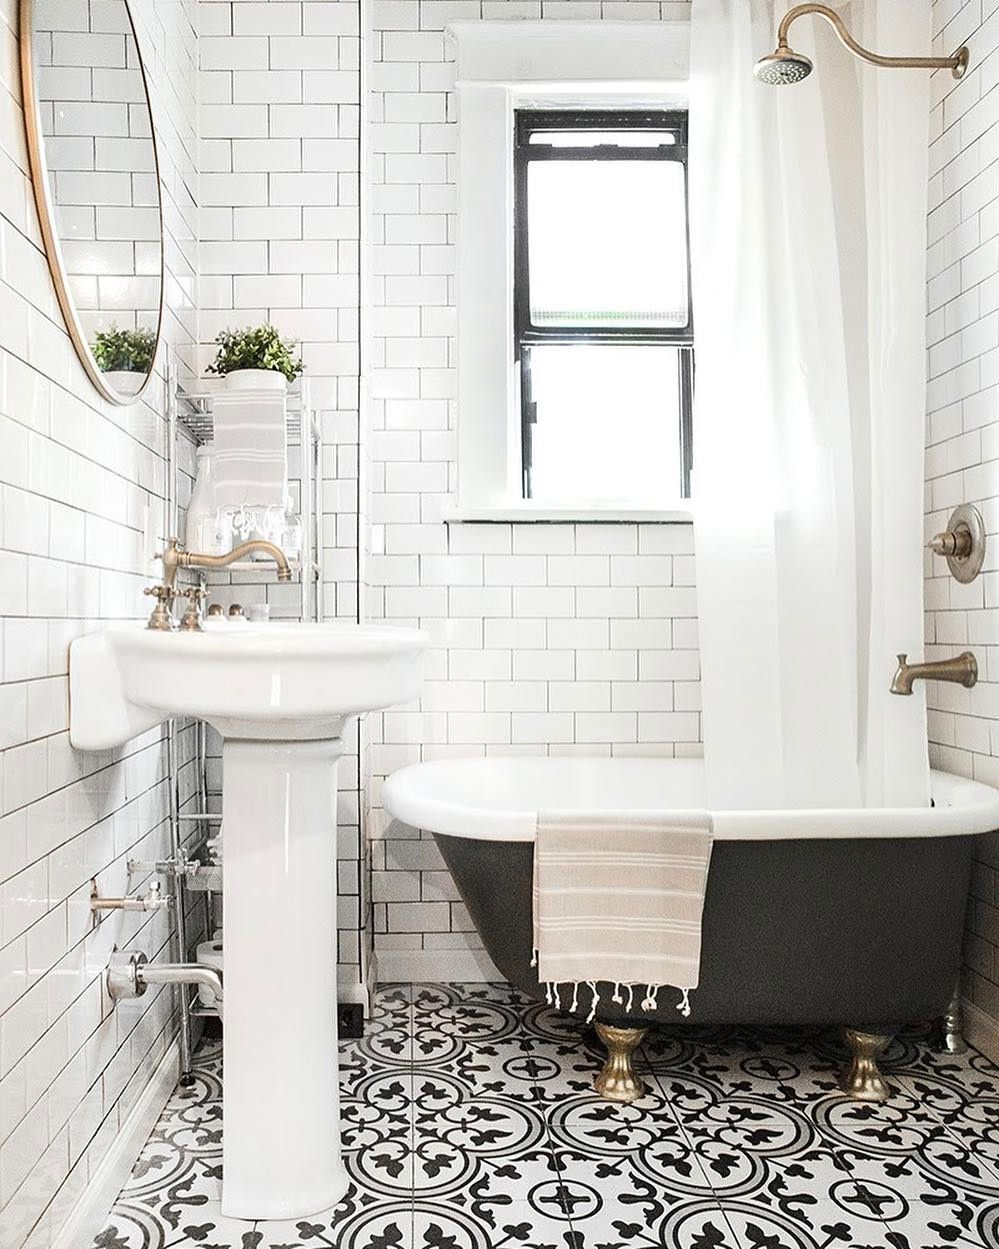 A Simple Bathroom Design With A Beautiful Tile Pattern To Add Some